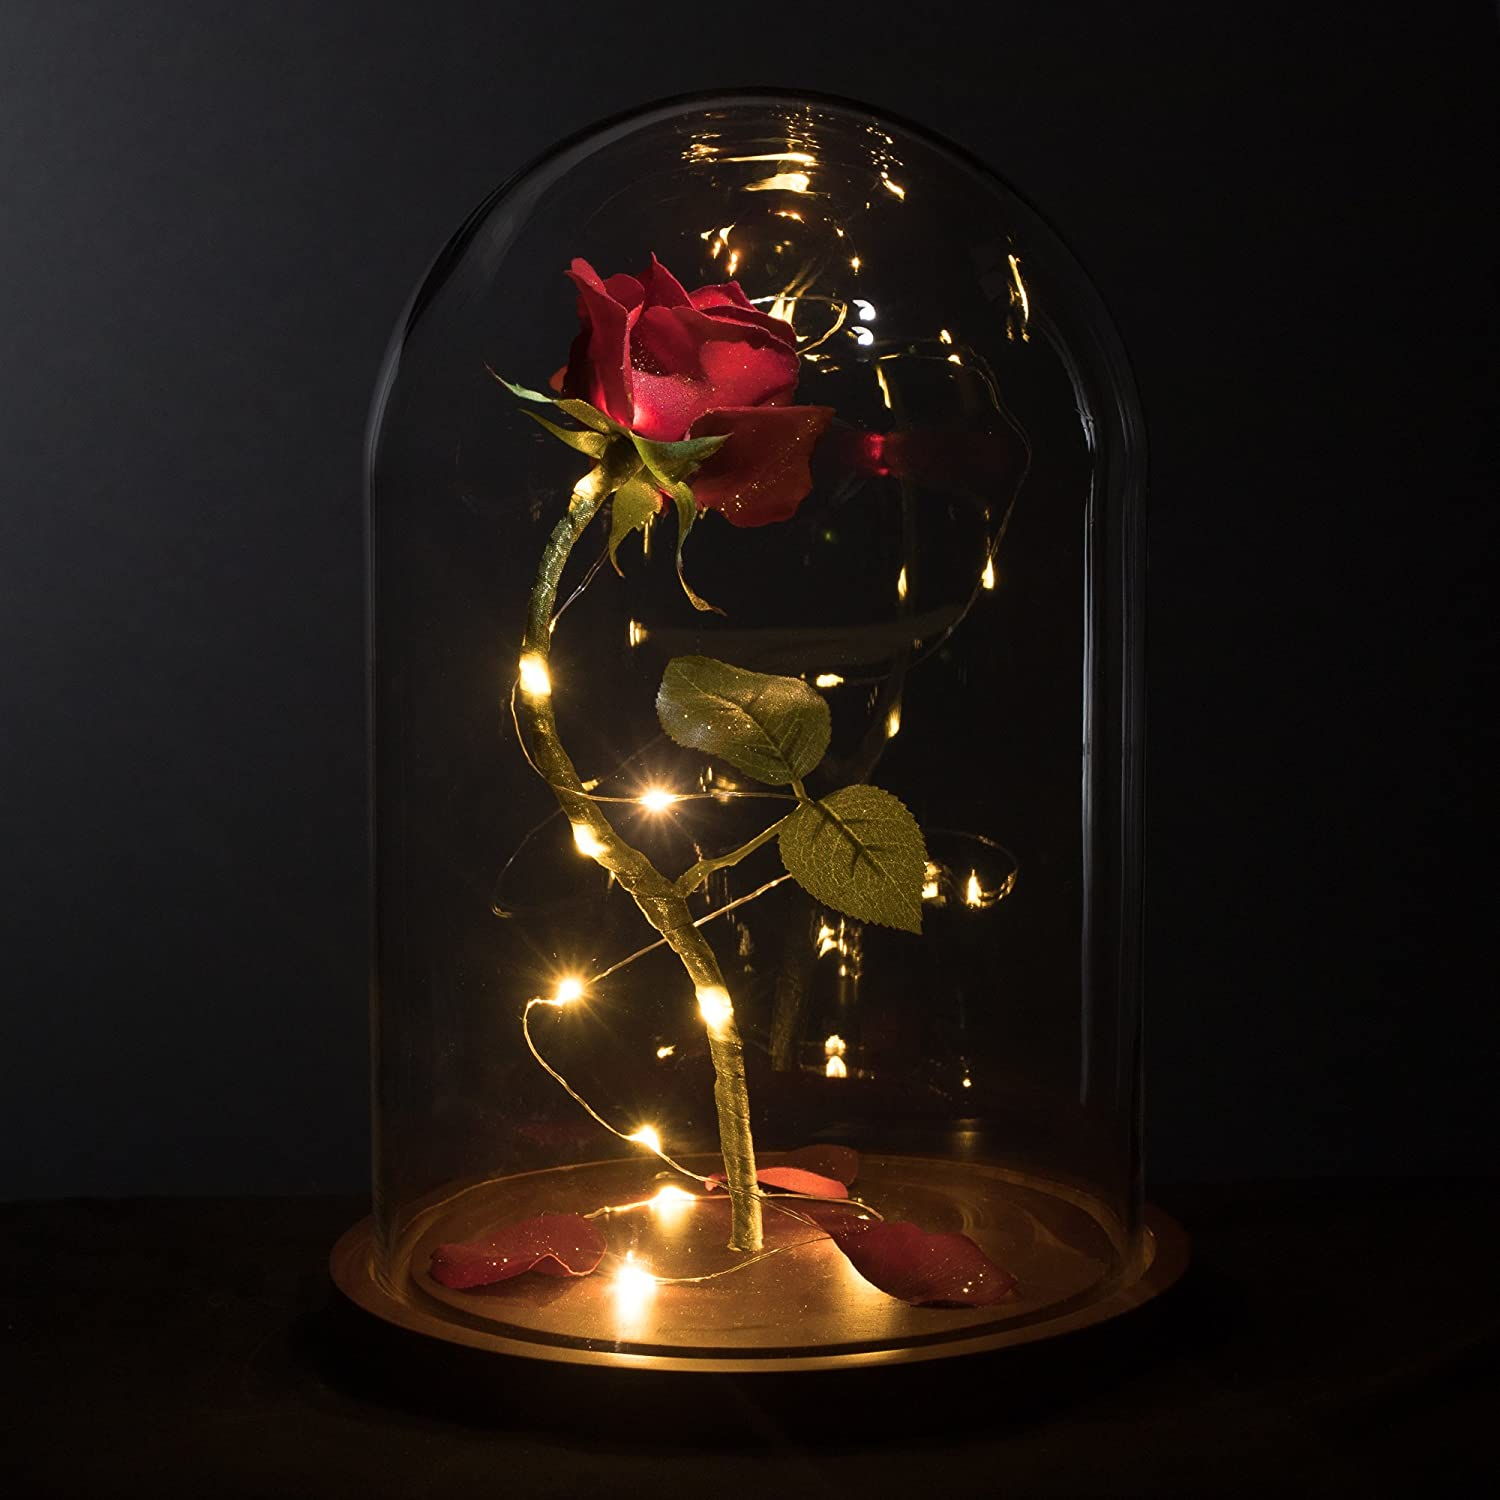 Amazon life sized 13 enchanted rose that lasts forever in amazon life sized 13 enchanted rose that lasts forever in glass dome inspired by disney beauty and the beast belle by magicprincesswhitney magic izmirmasajfo